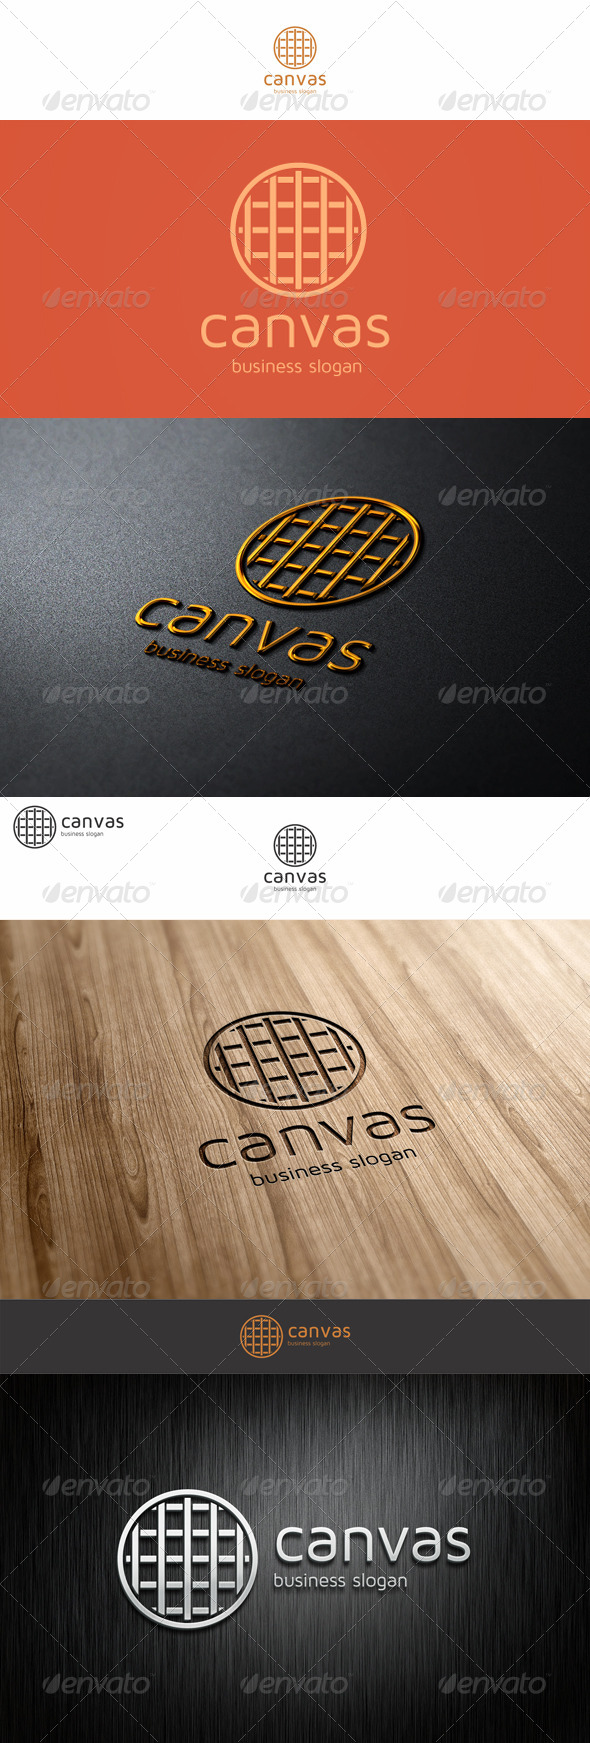 Canvas Logo Template - Symbols Logo Templates